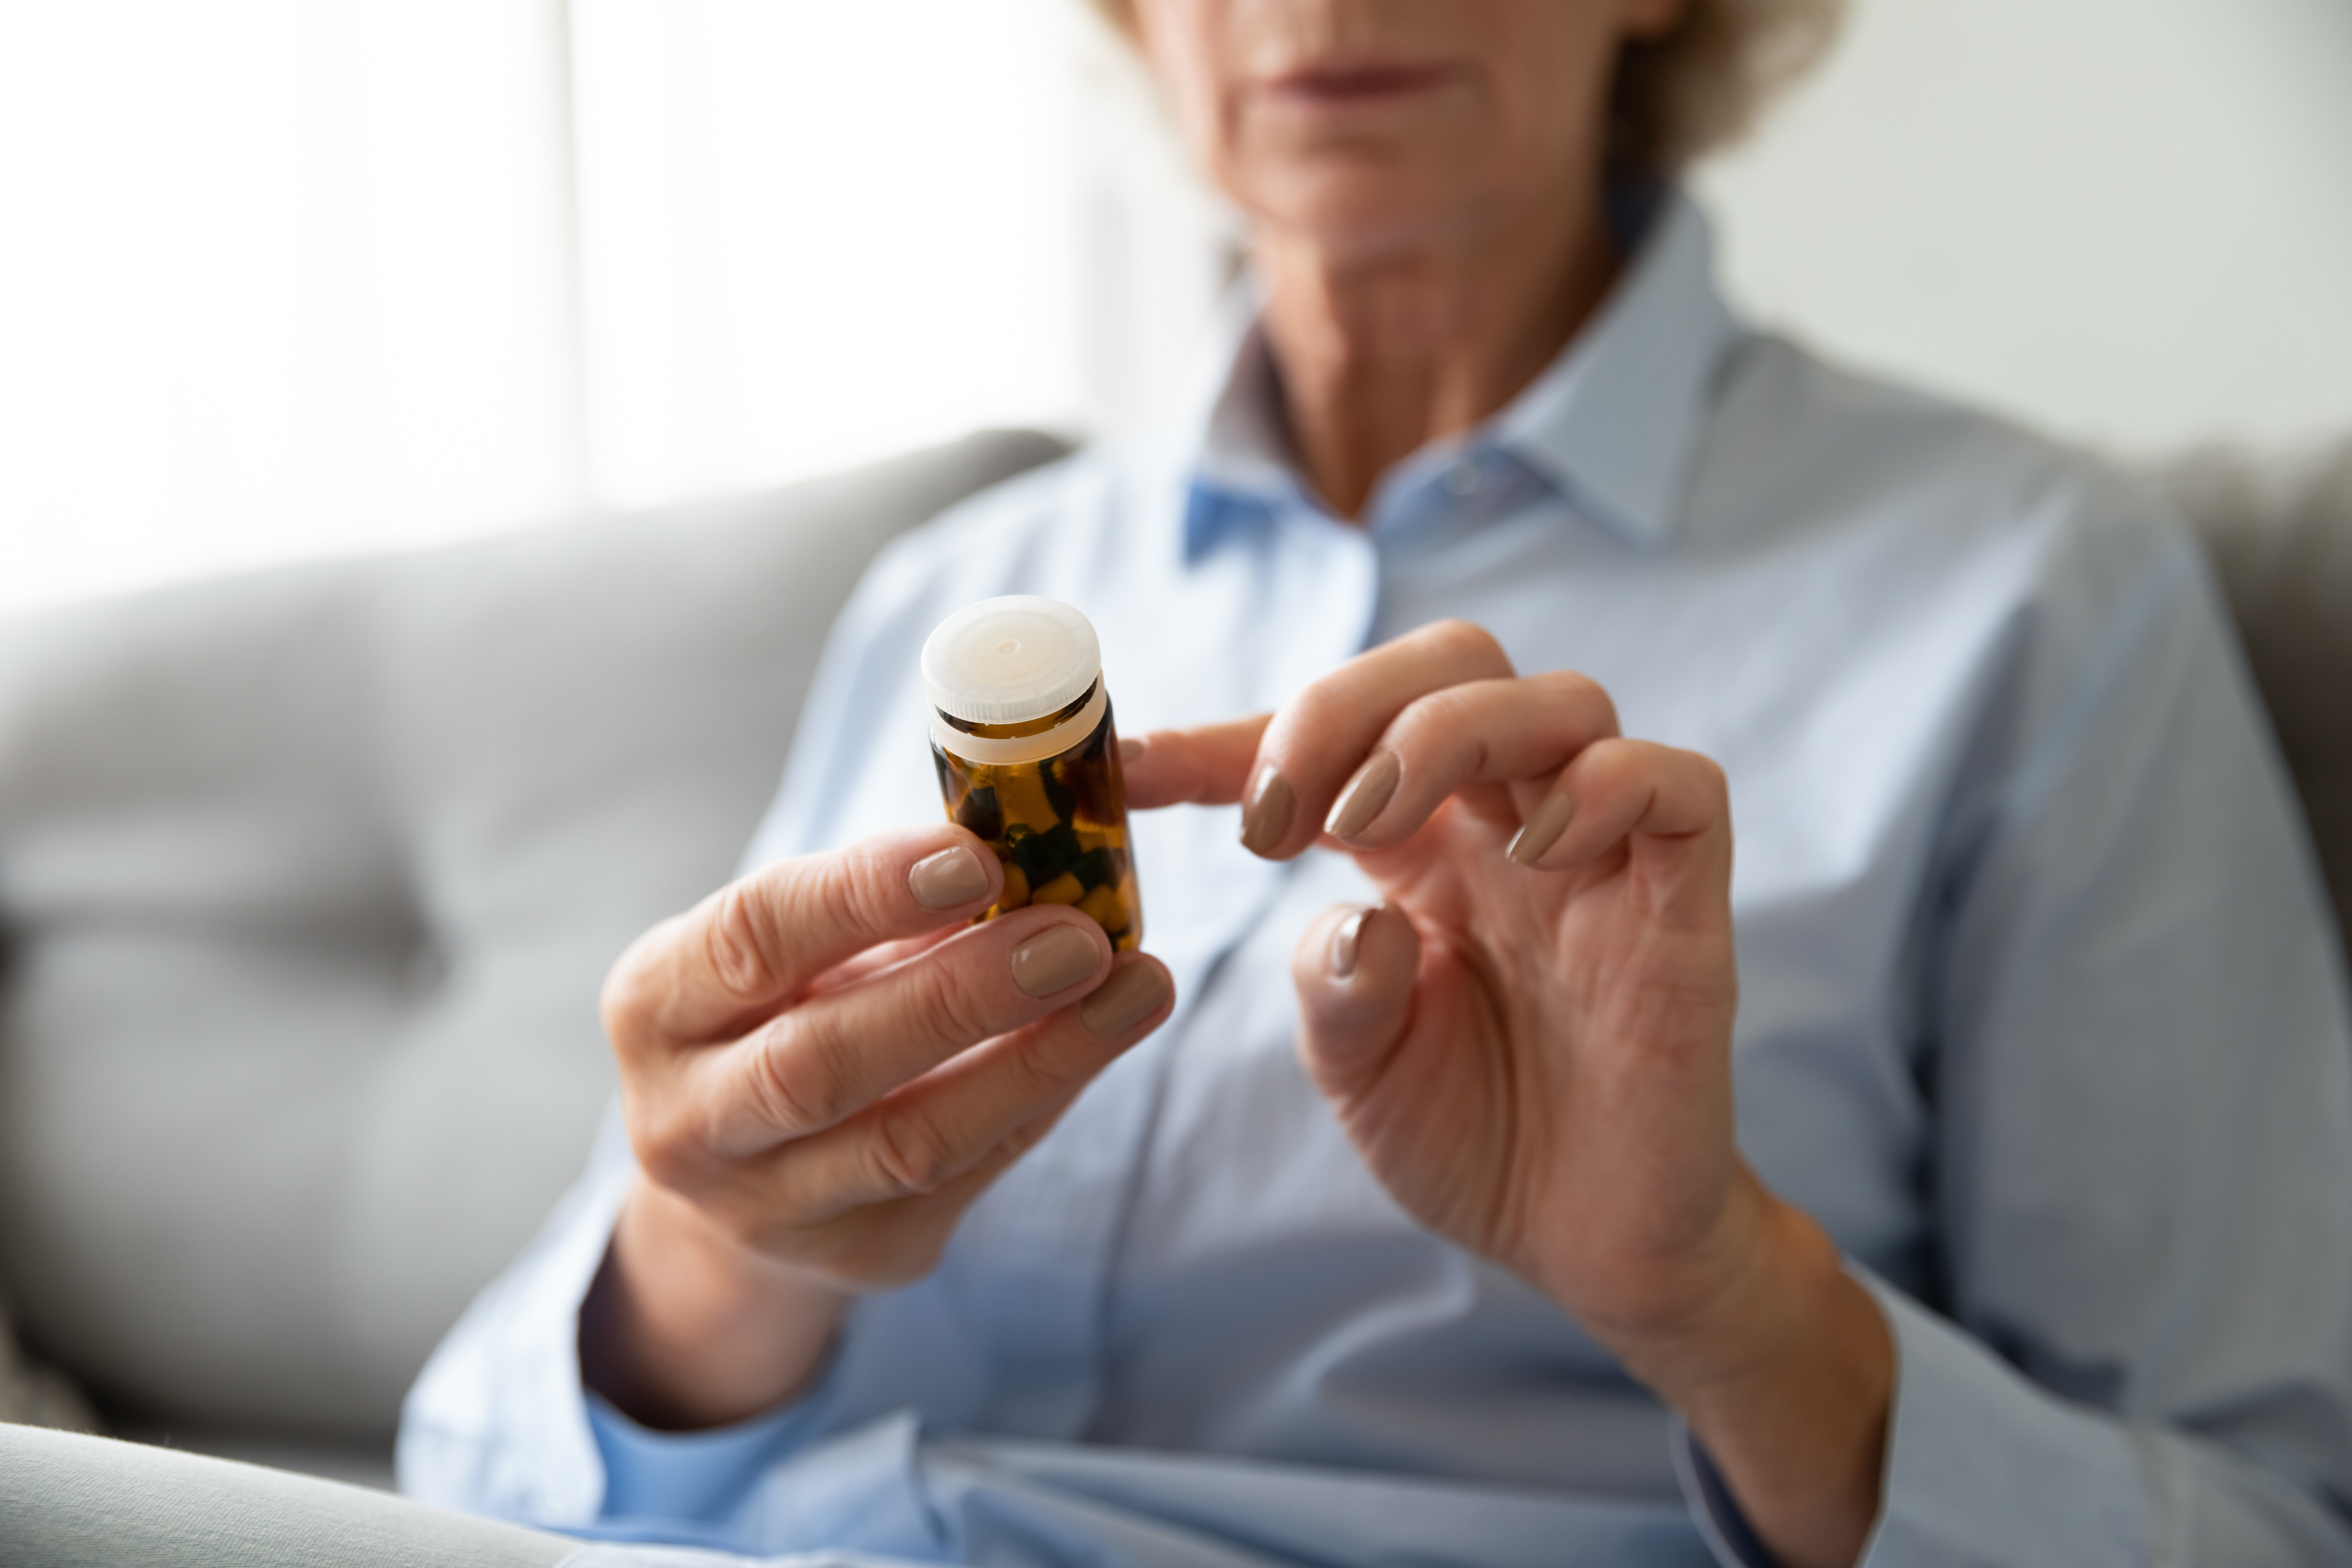 Woman looking at pill bottle